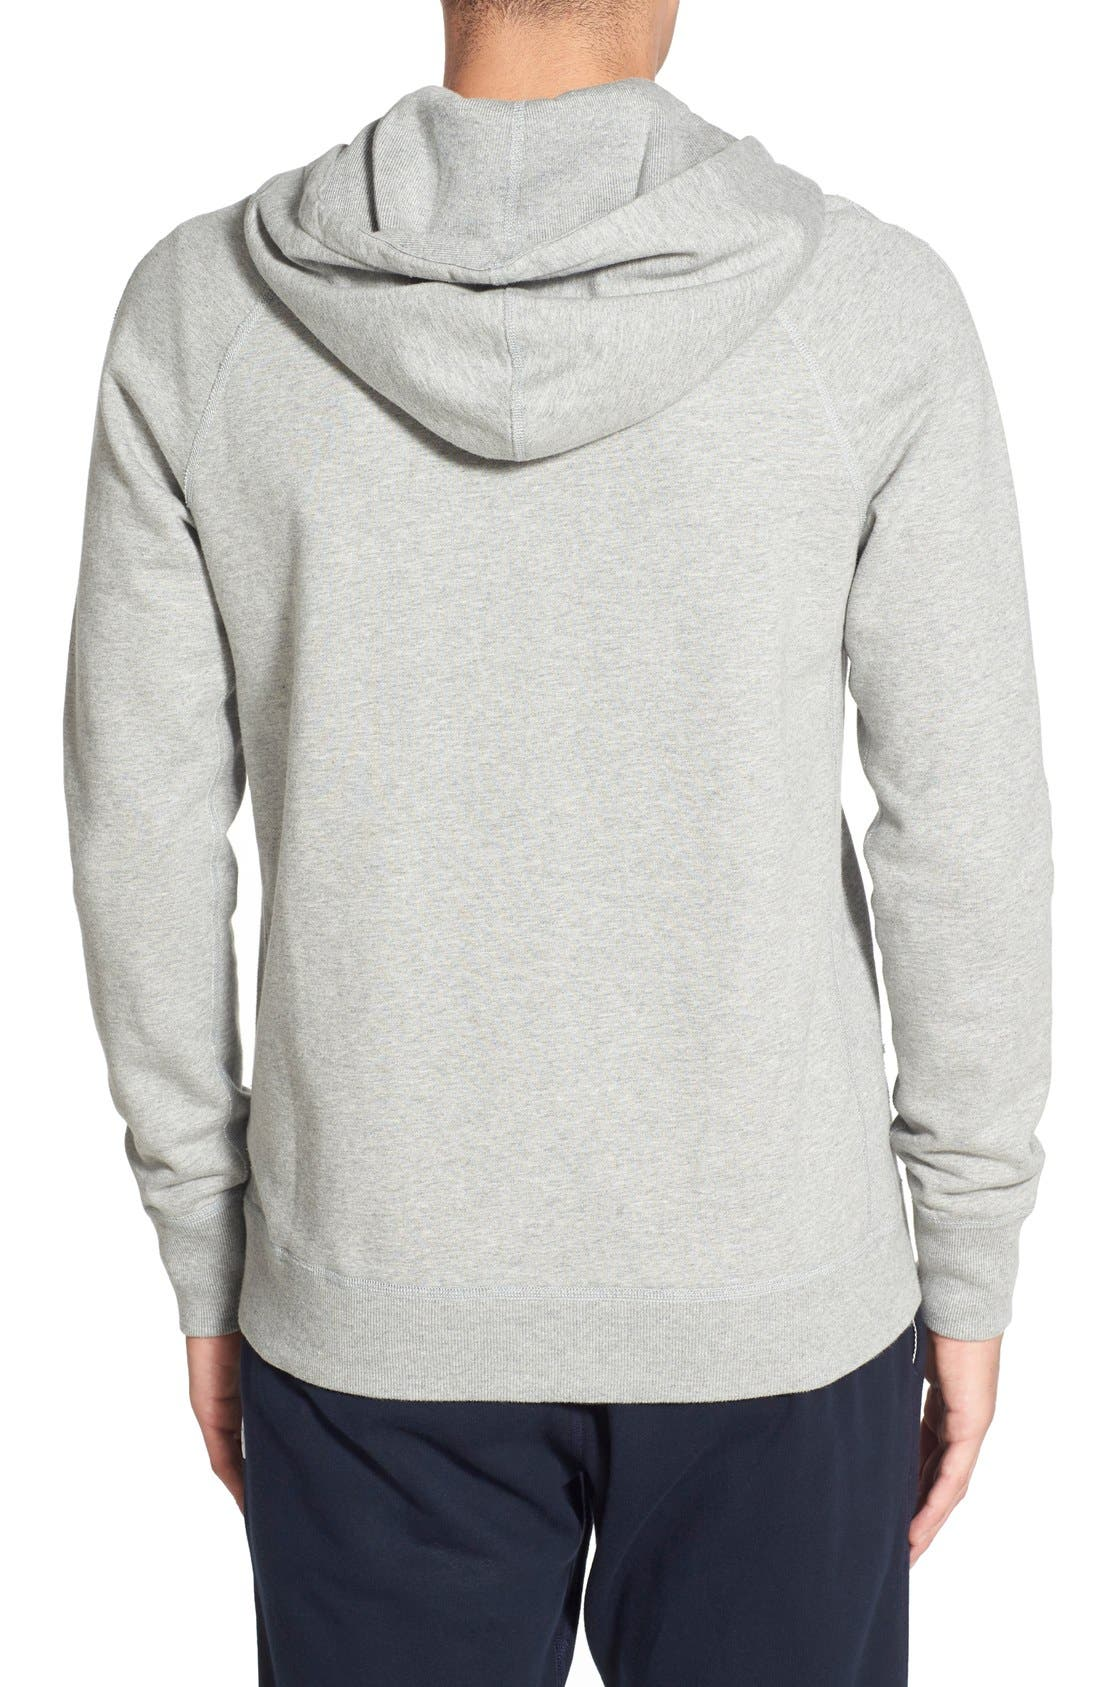 Alternate Image 2  - Reigning Champ Trim Fit Full Zip Hoodie